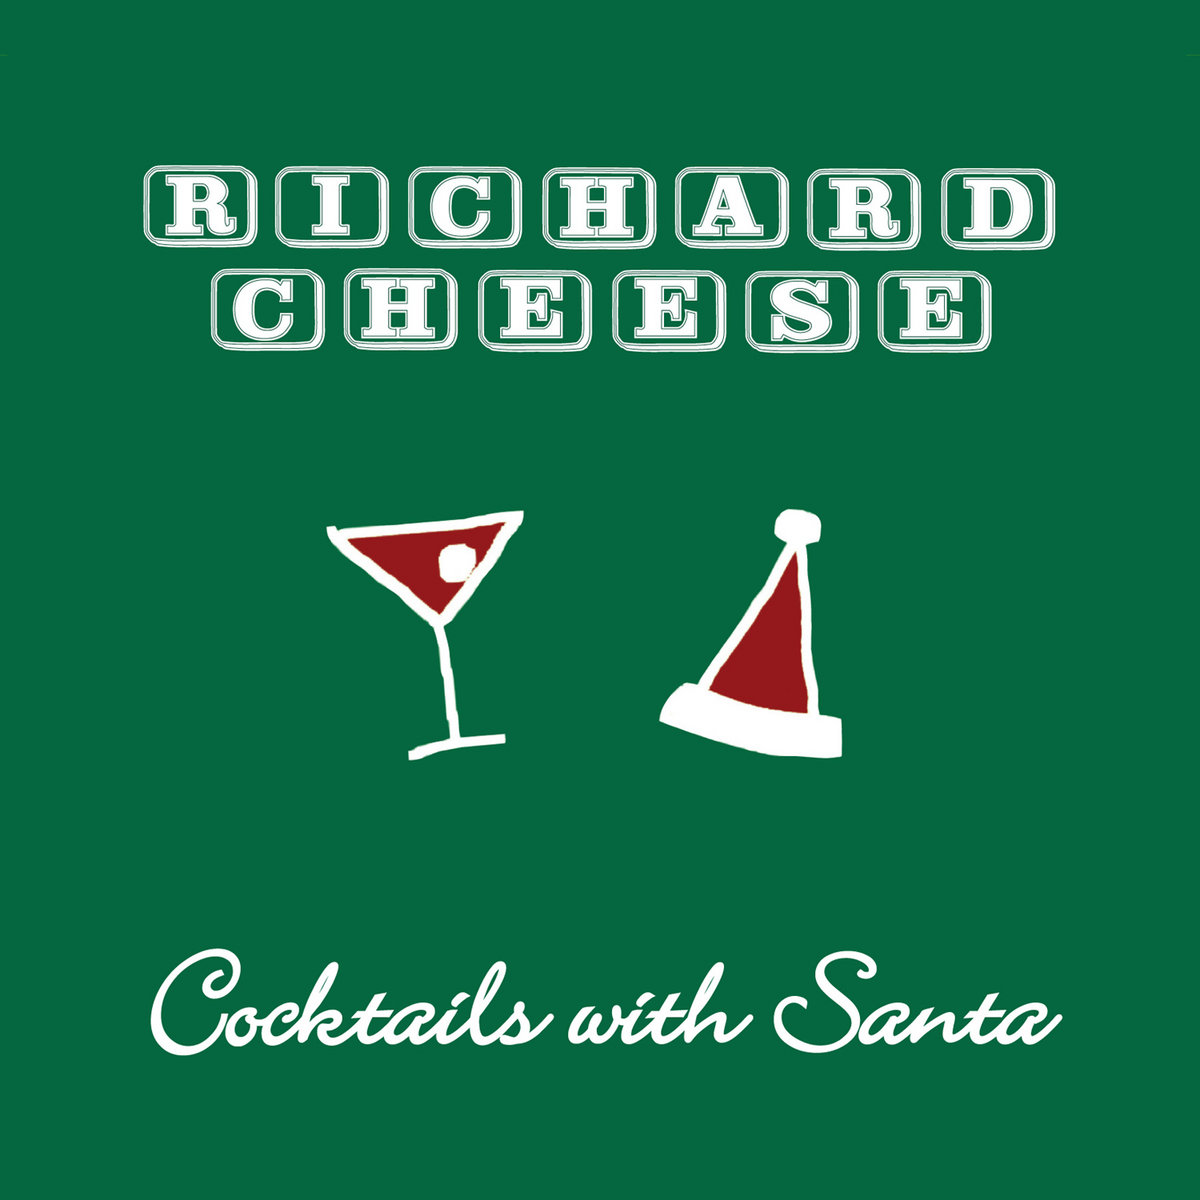 cocktails with santa 2013 richard cheese